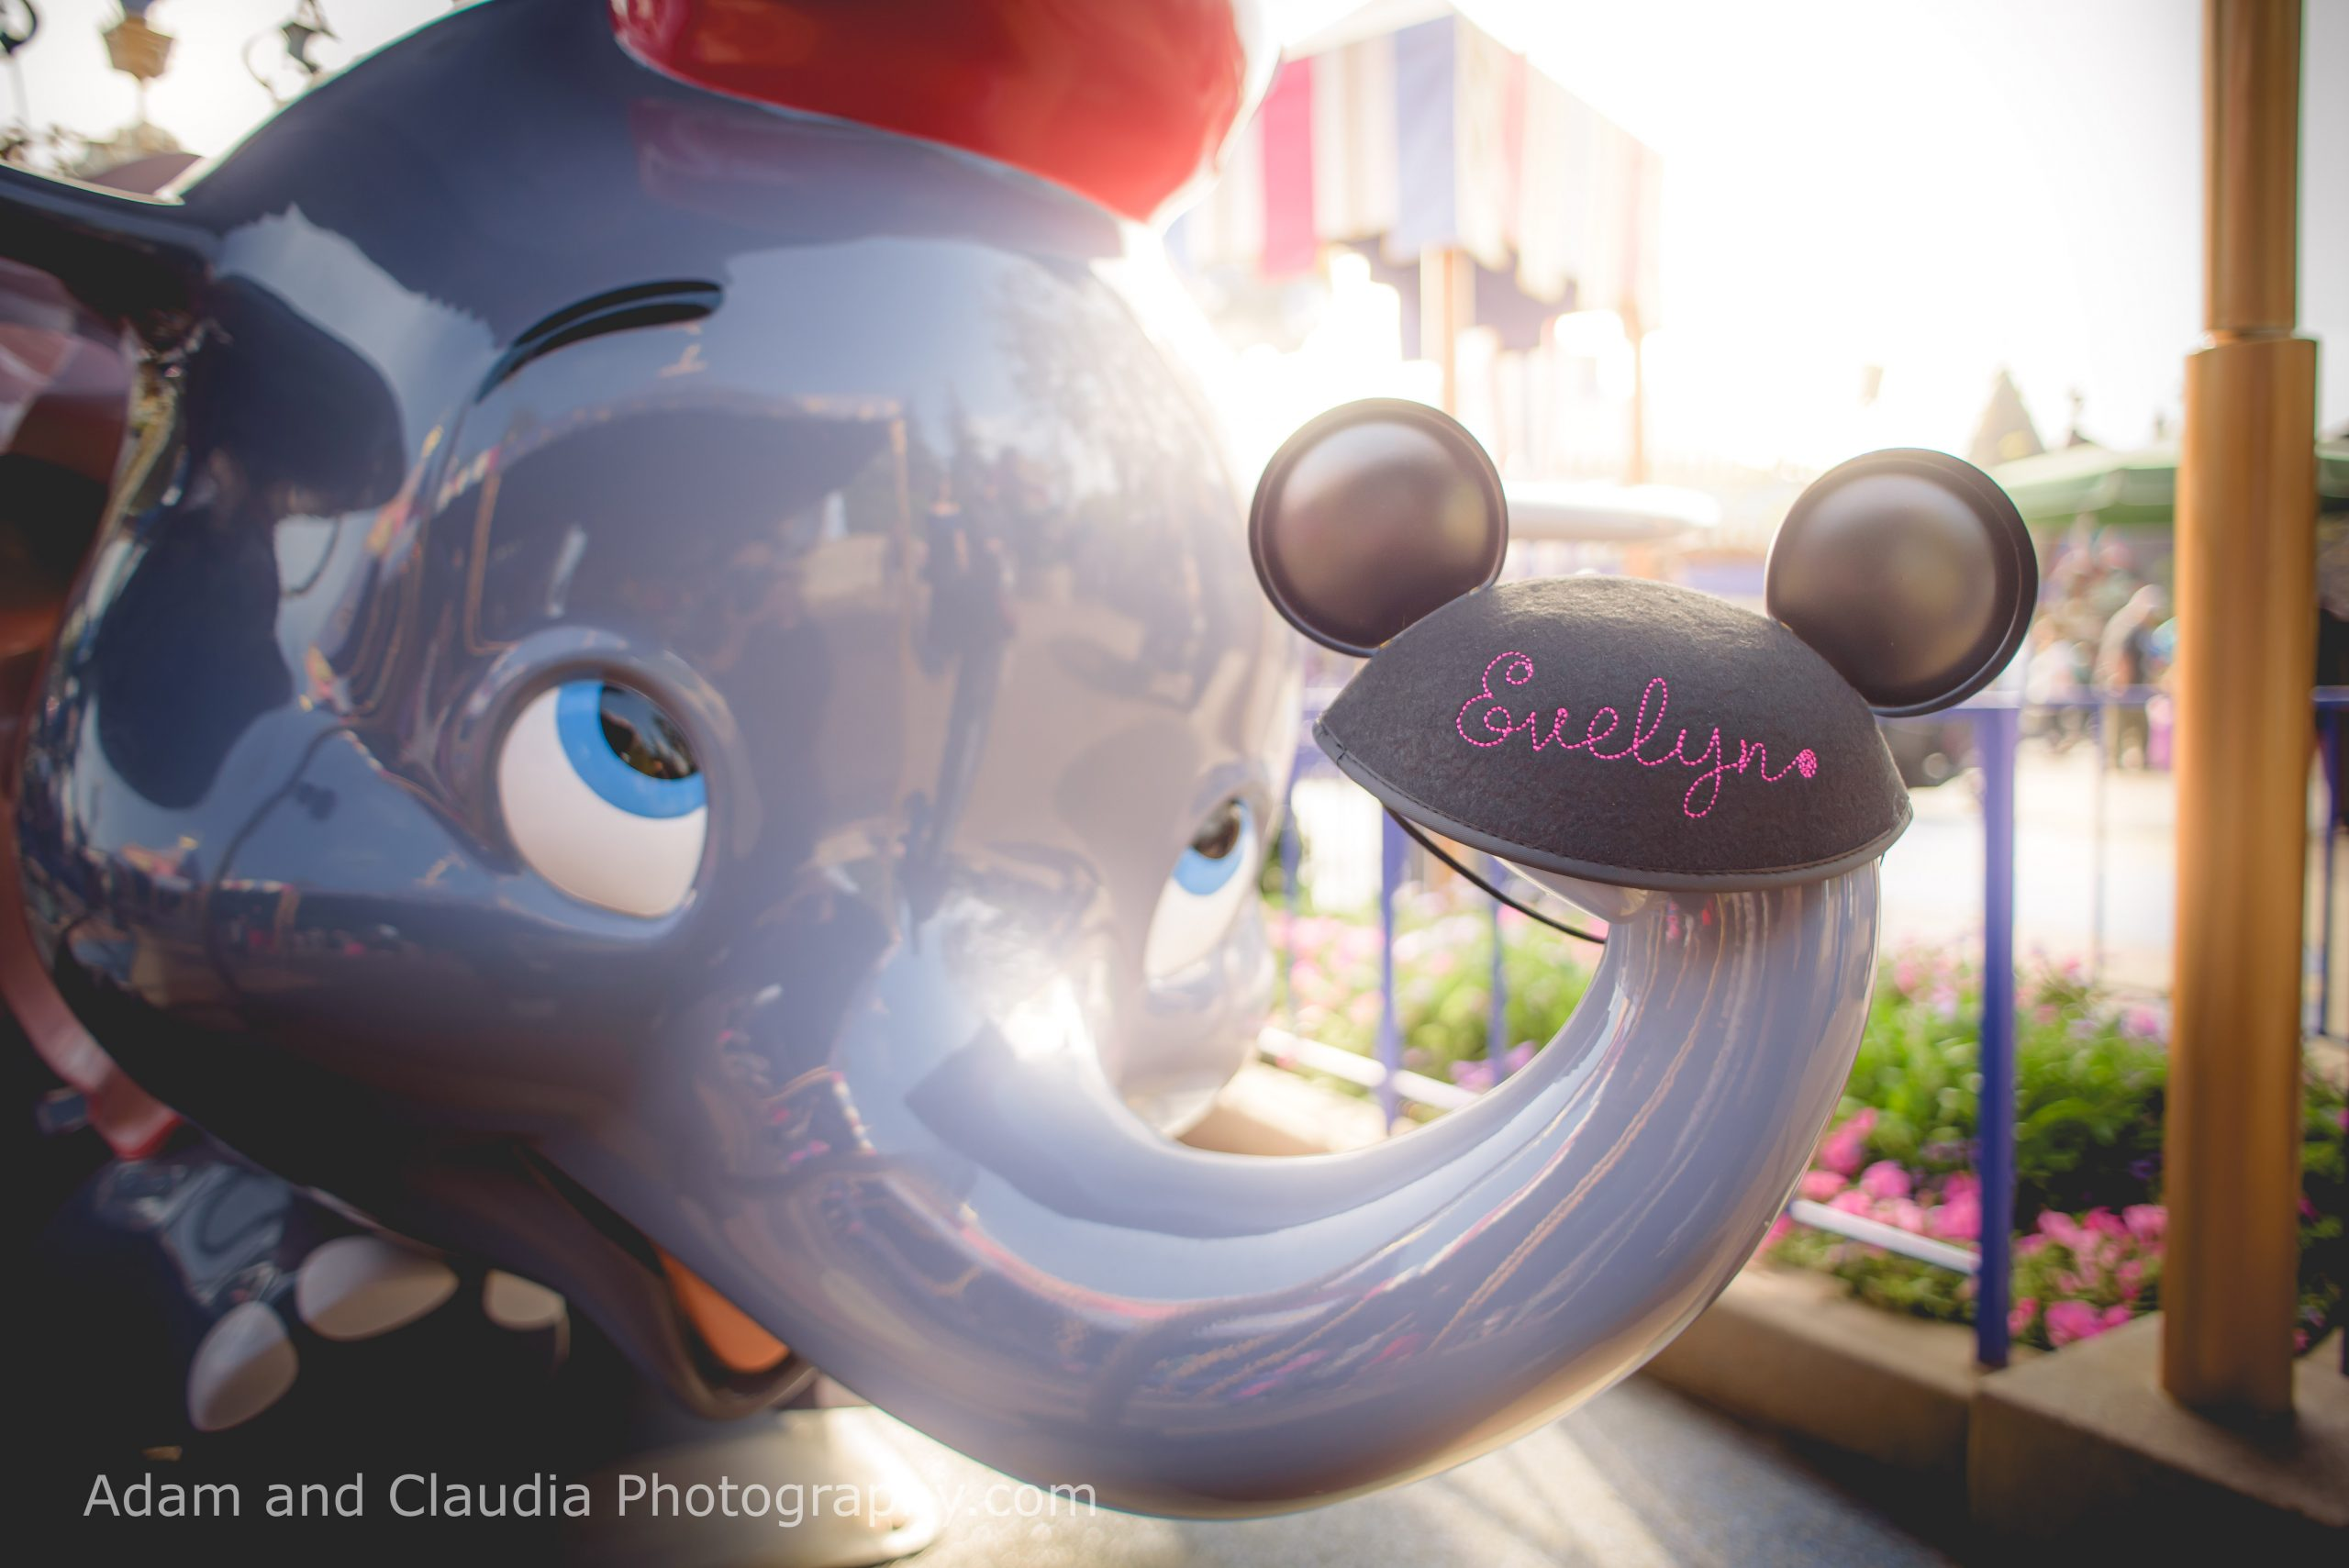 Yada - Disneyland Maternity Photos in Disneyland